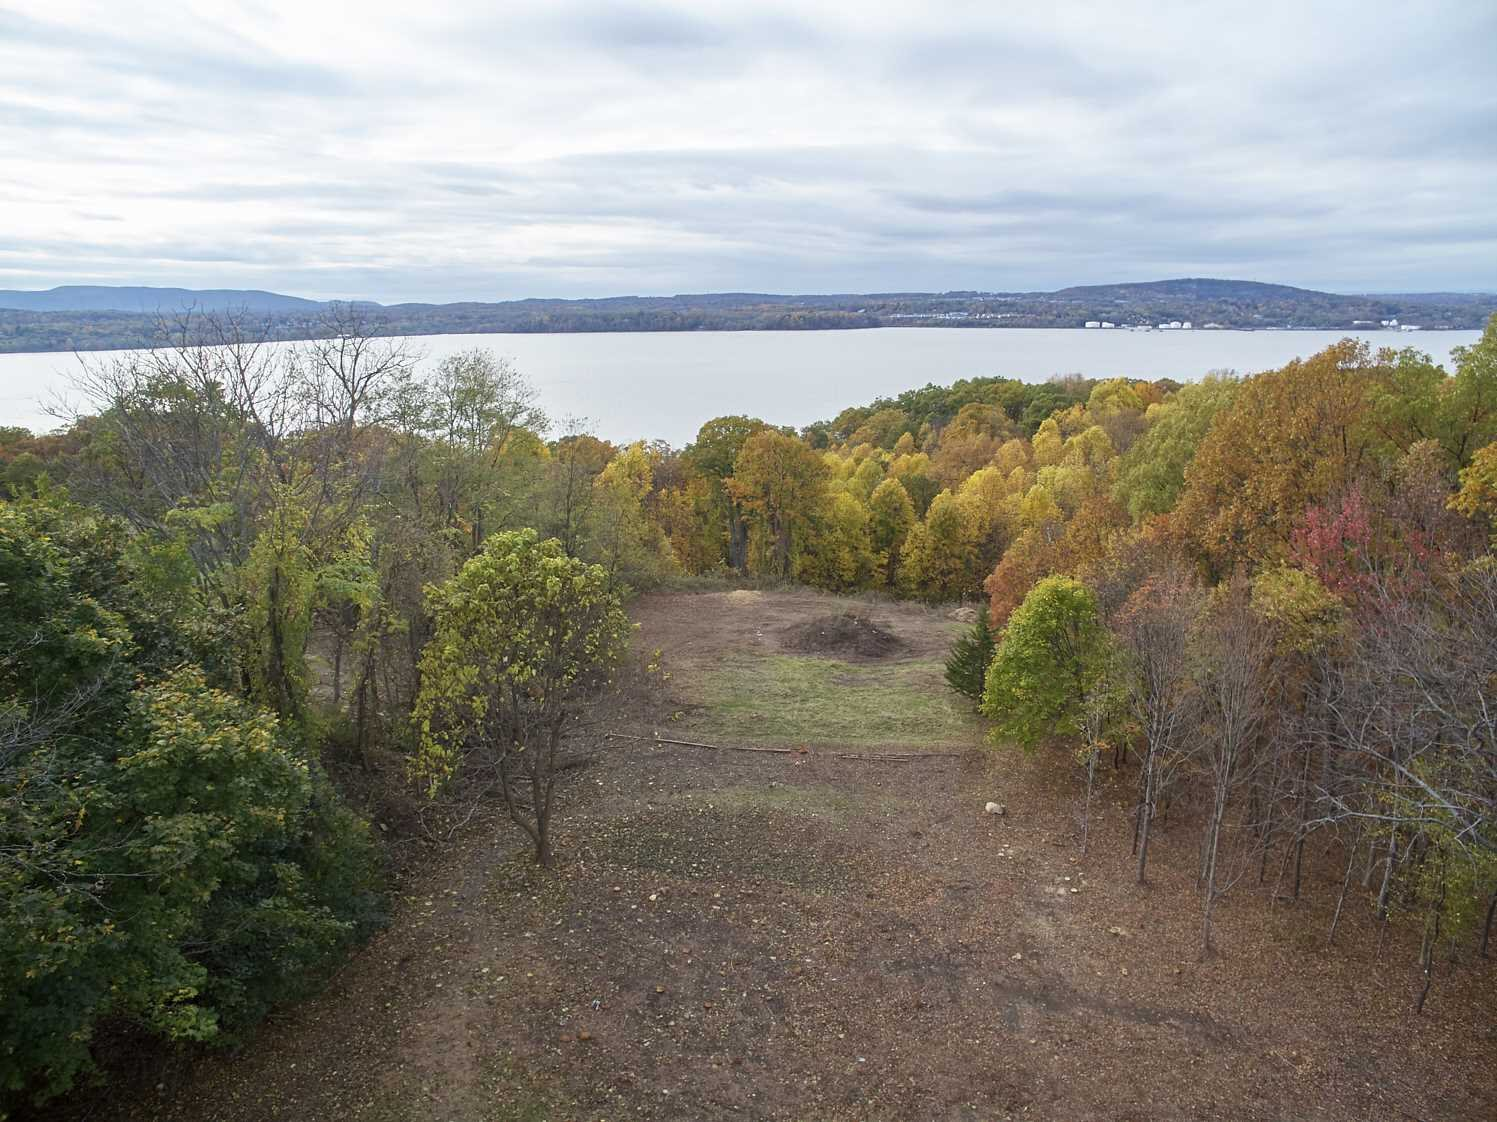 Land for Sale at ROUTE 9D ROUTE 9D Beacon, New York 12508 United States